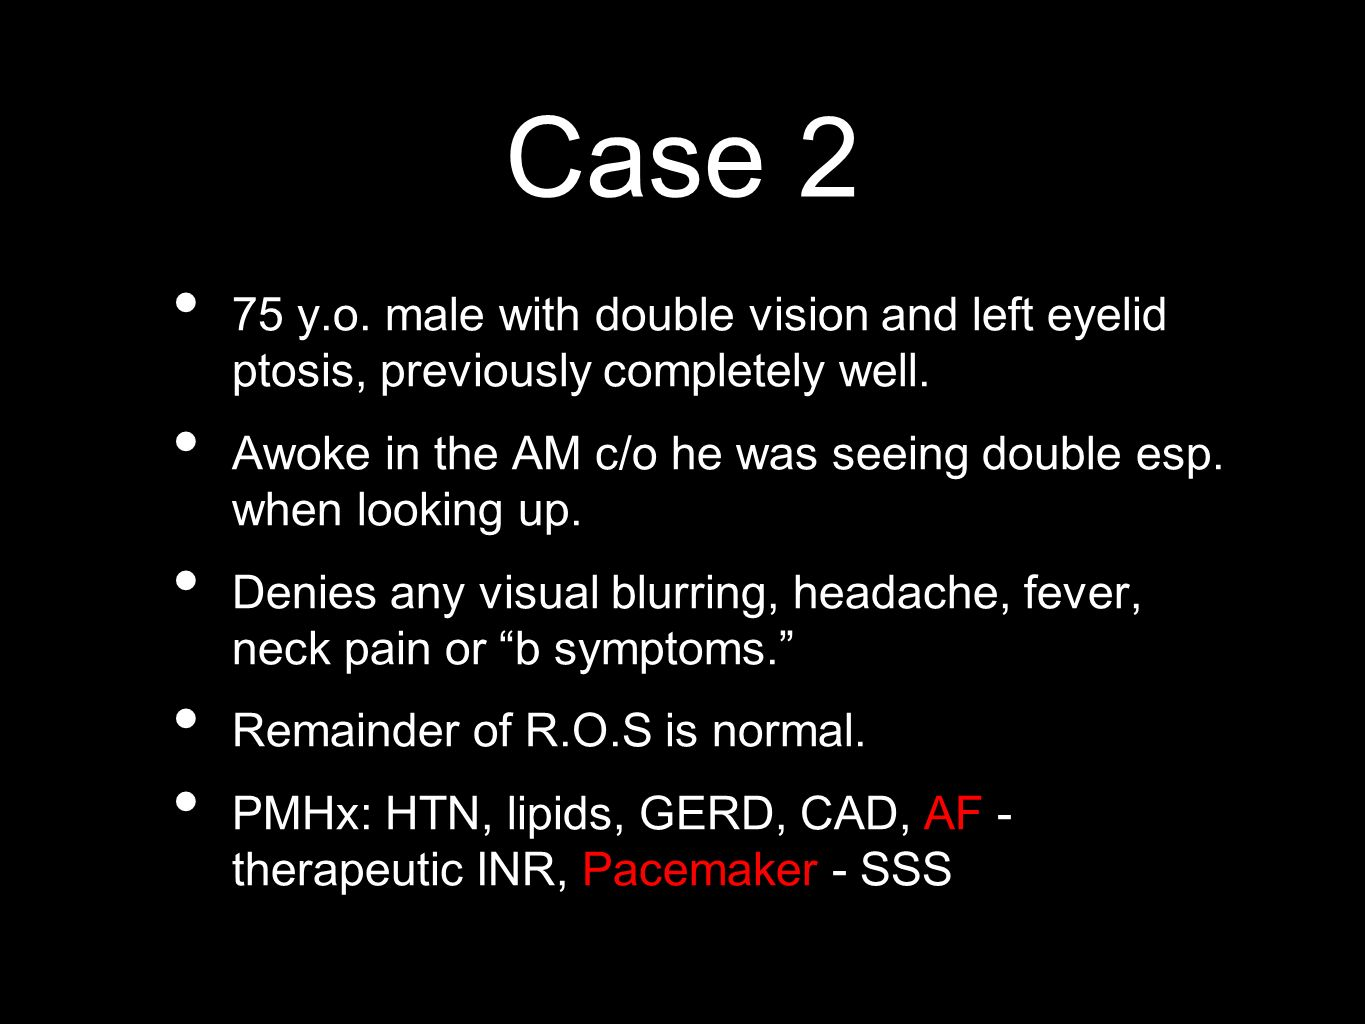 Case 2 75 y.o. male with double vision and left eyelid ptosis, previously completely well.